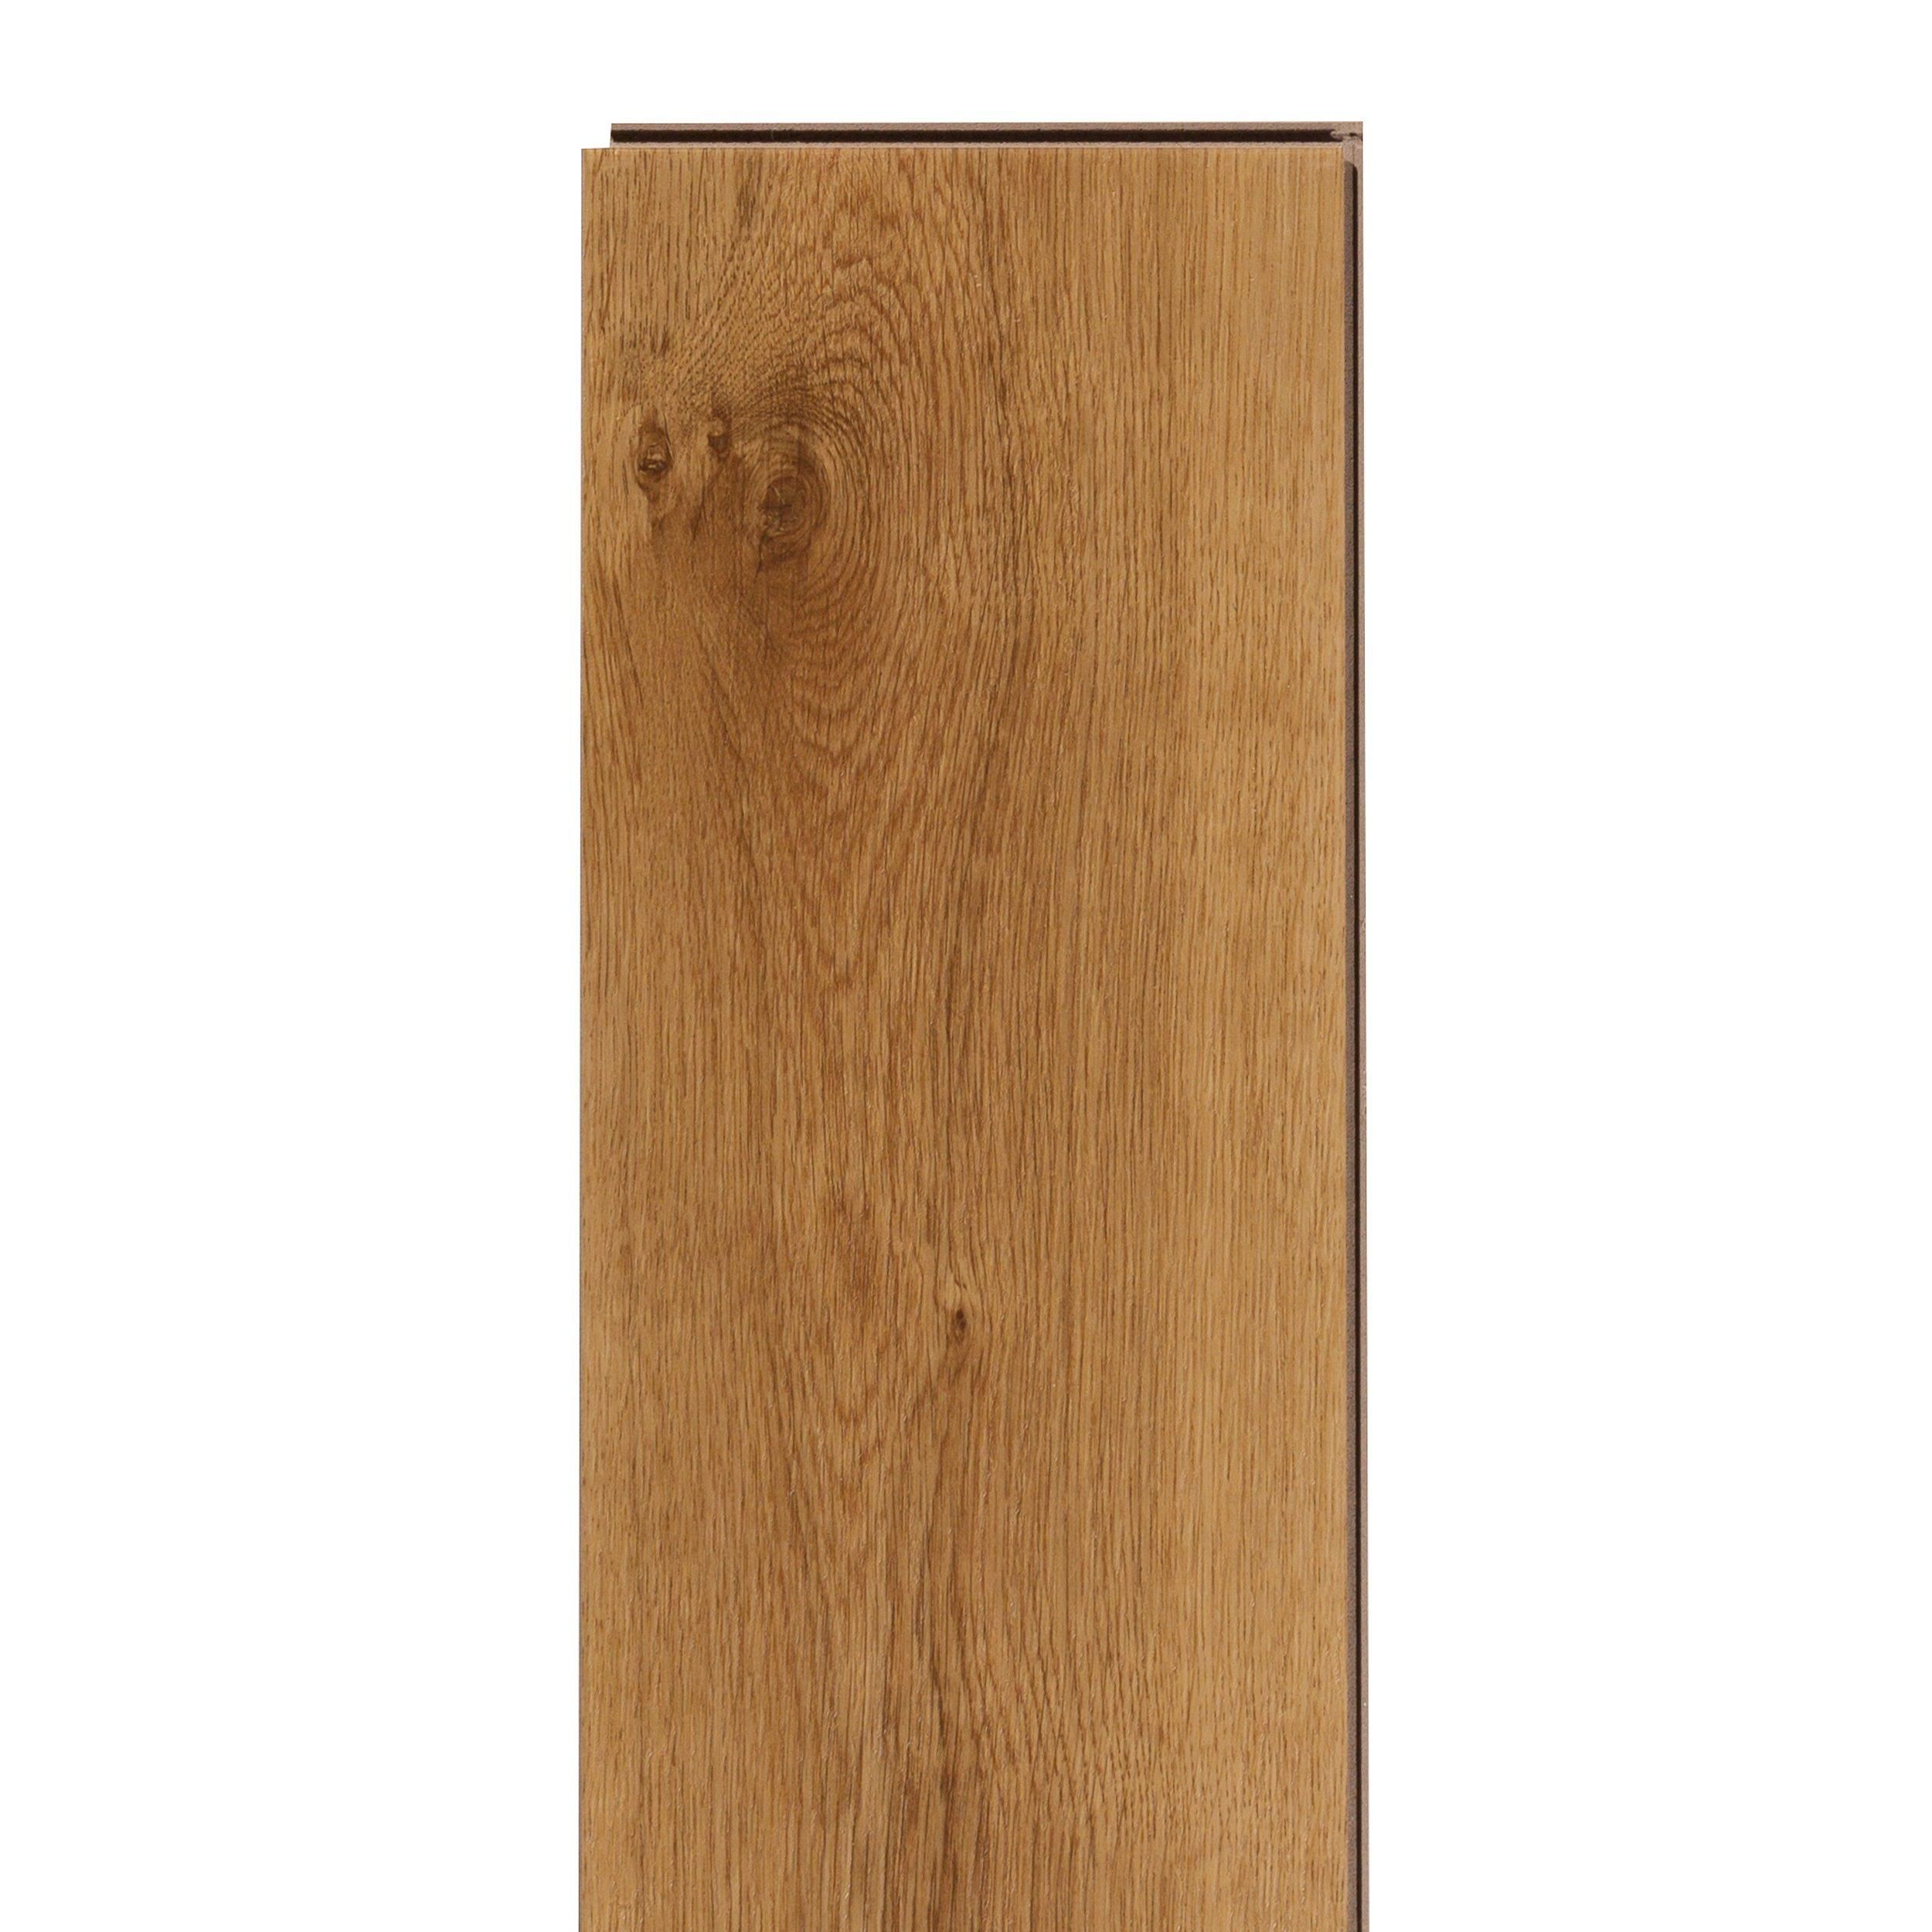 Blonde Oak Rigid Core Luxury Vinyl Plank Cork Back In 2020 Luxury Vinyl Plank Vinyl Plank Luxury Vinyl